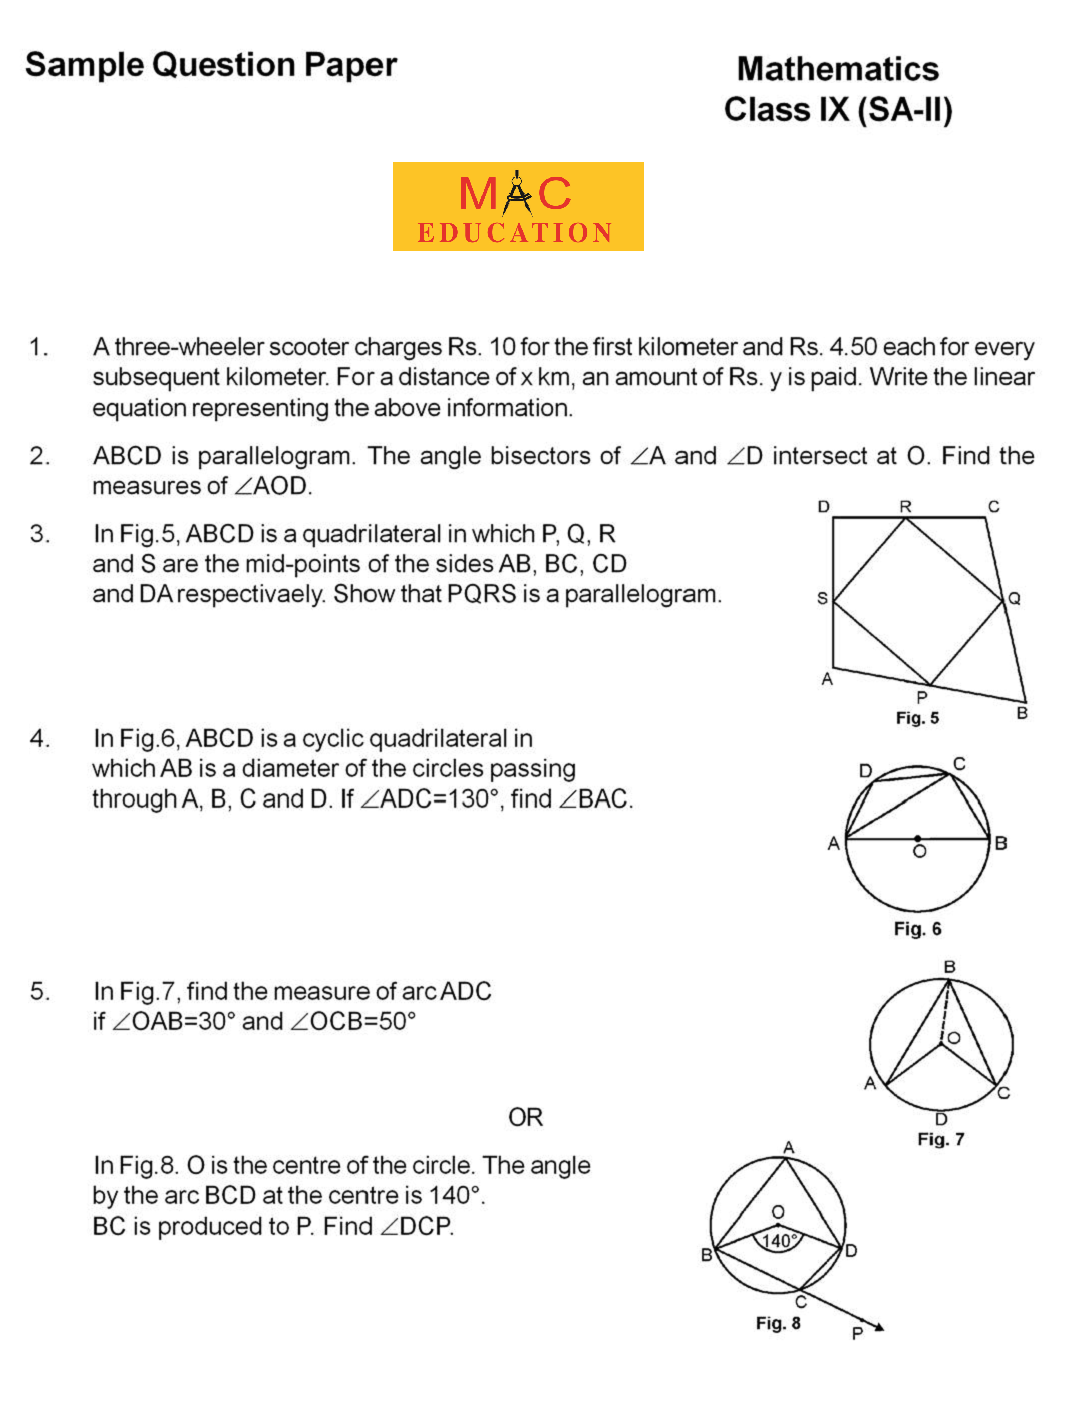 Sample Question Papers For Class 9 Cbse Sa2 Maths